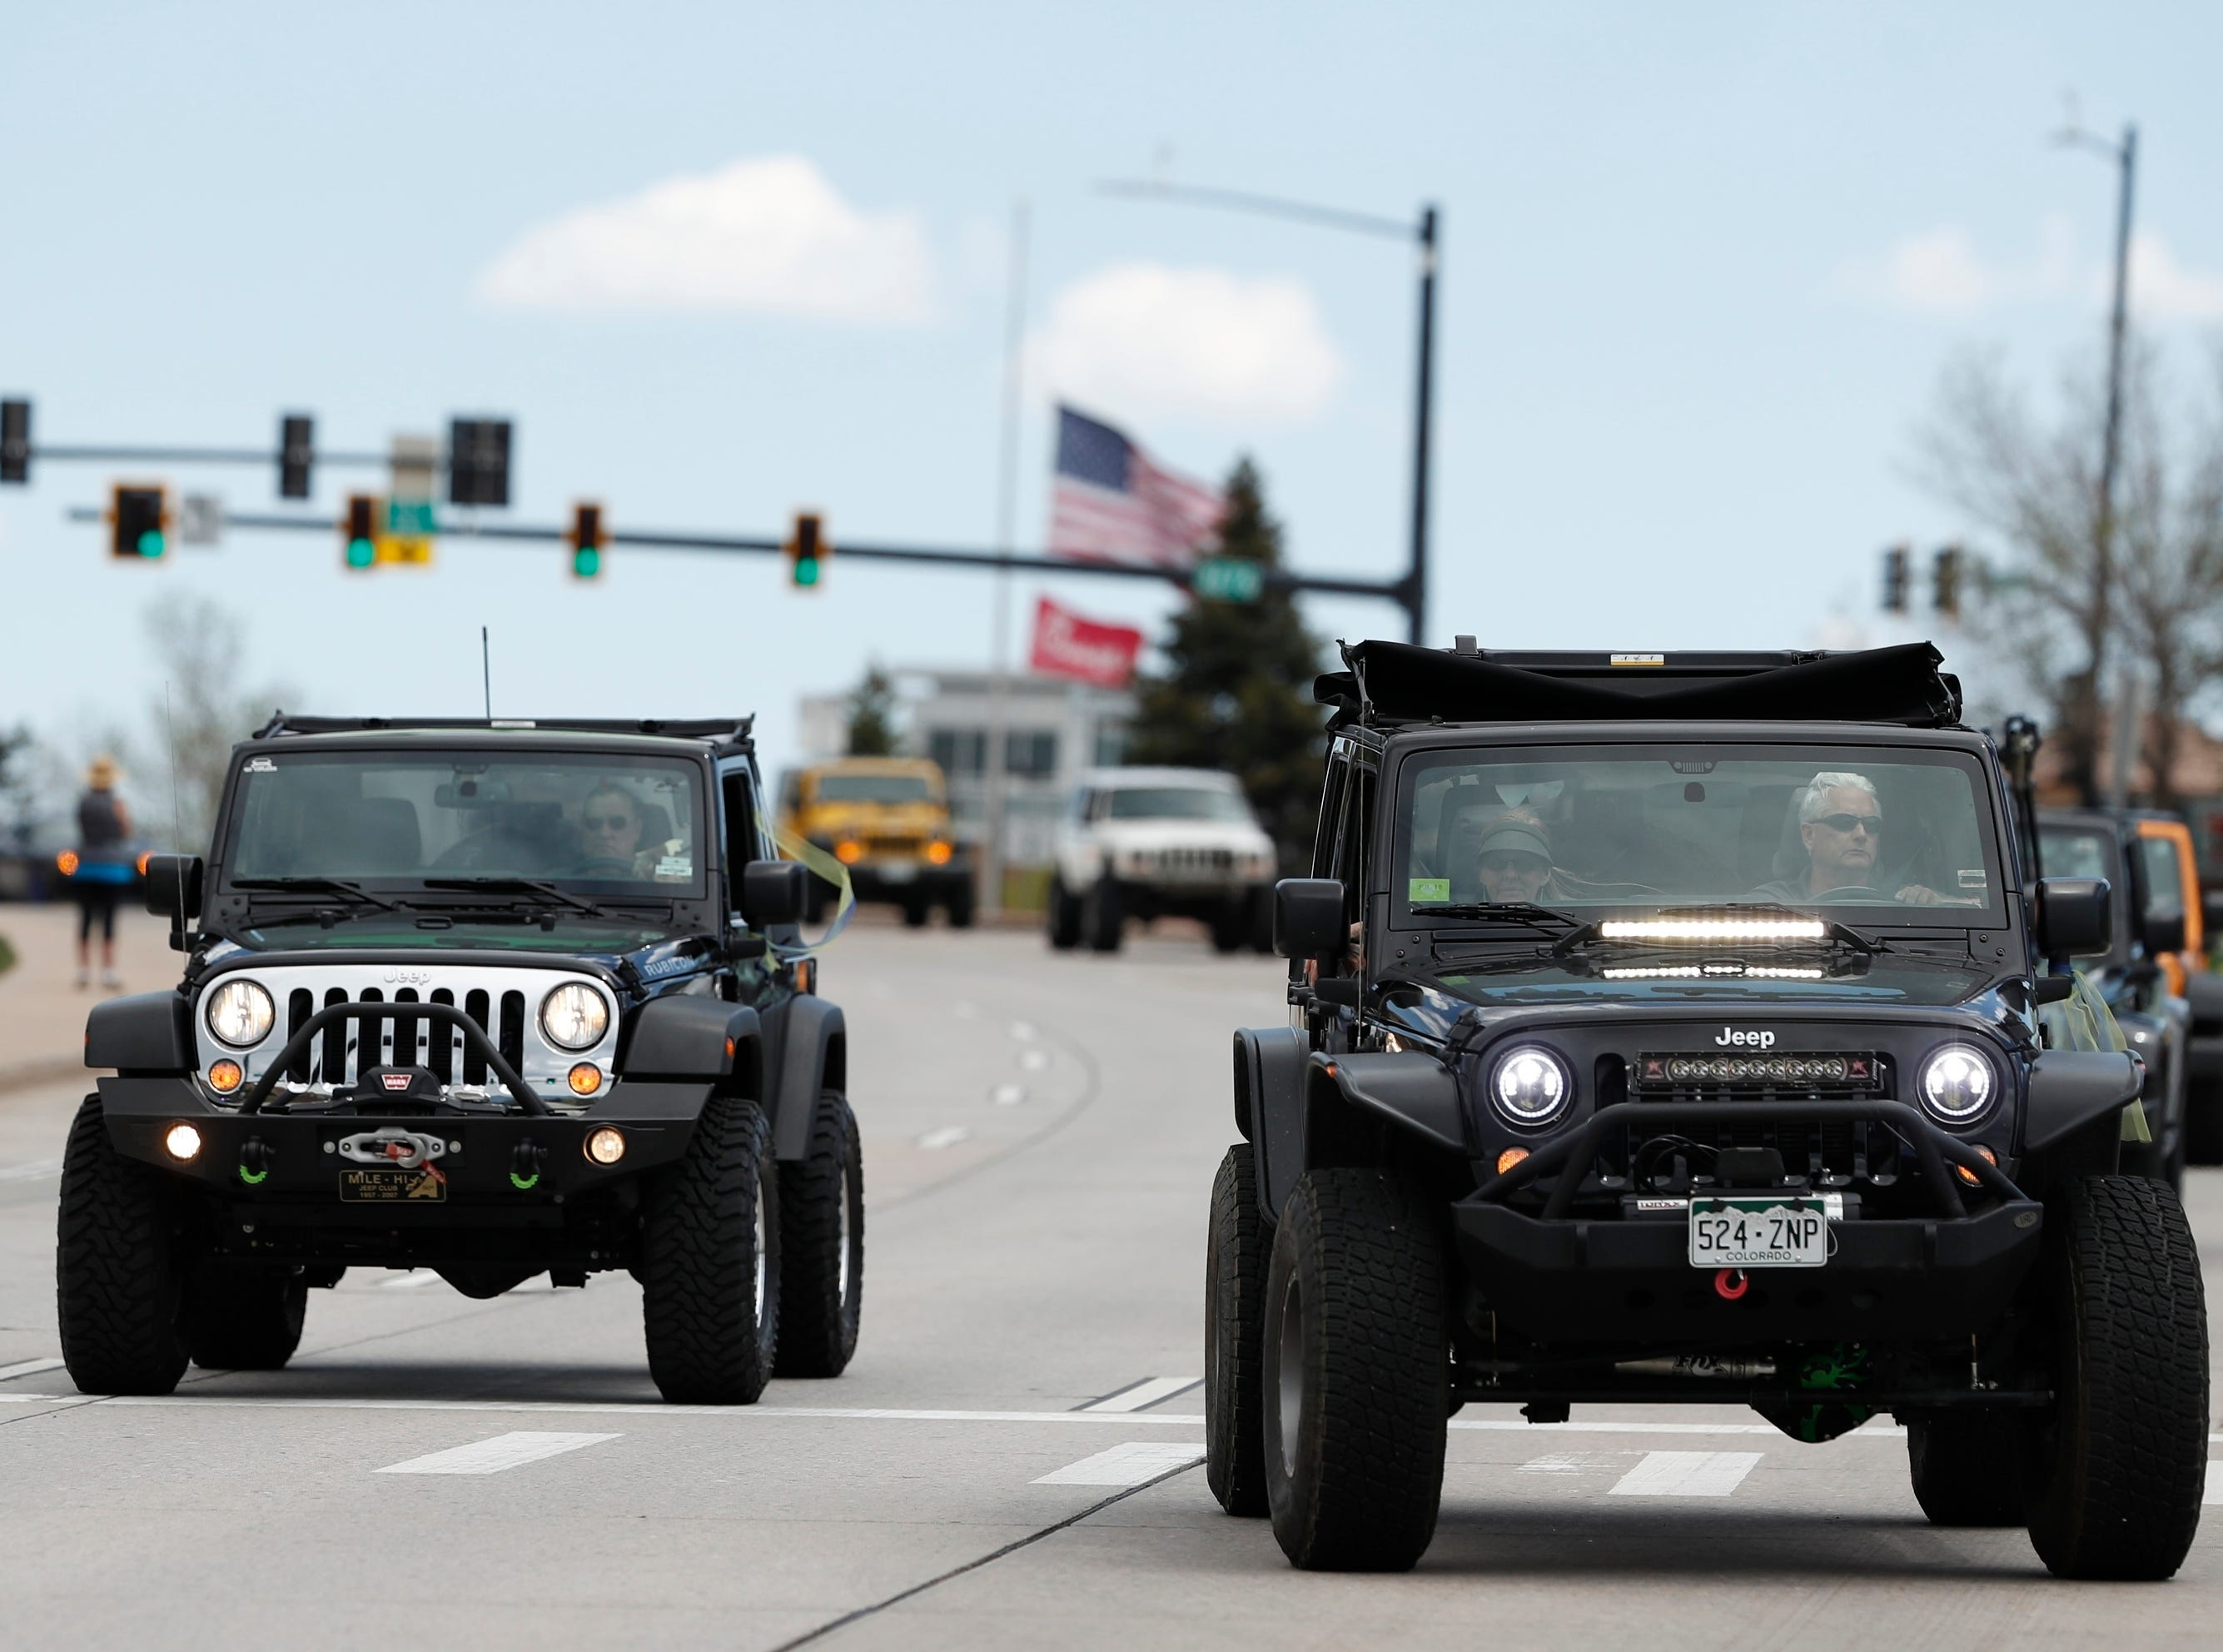 More than 600 Jeeps arrive at a memorial serve for Kendrick Castillo Wednesday, May 15, 2019, in Highlands Ranch, Colo.